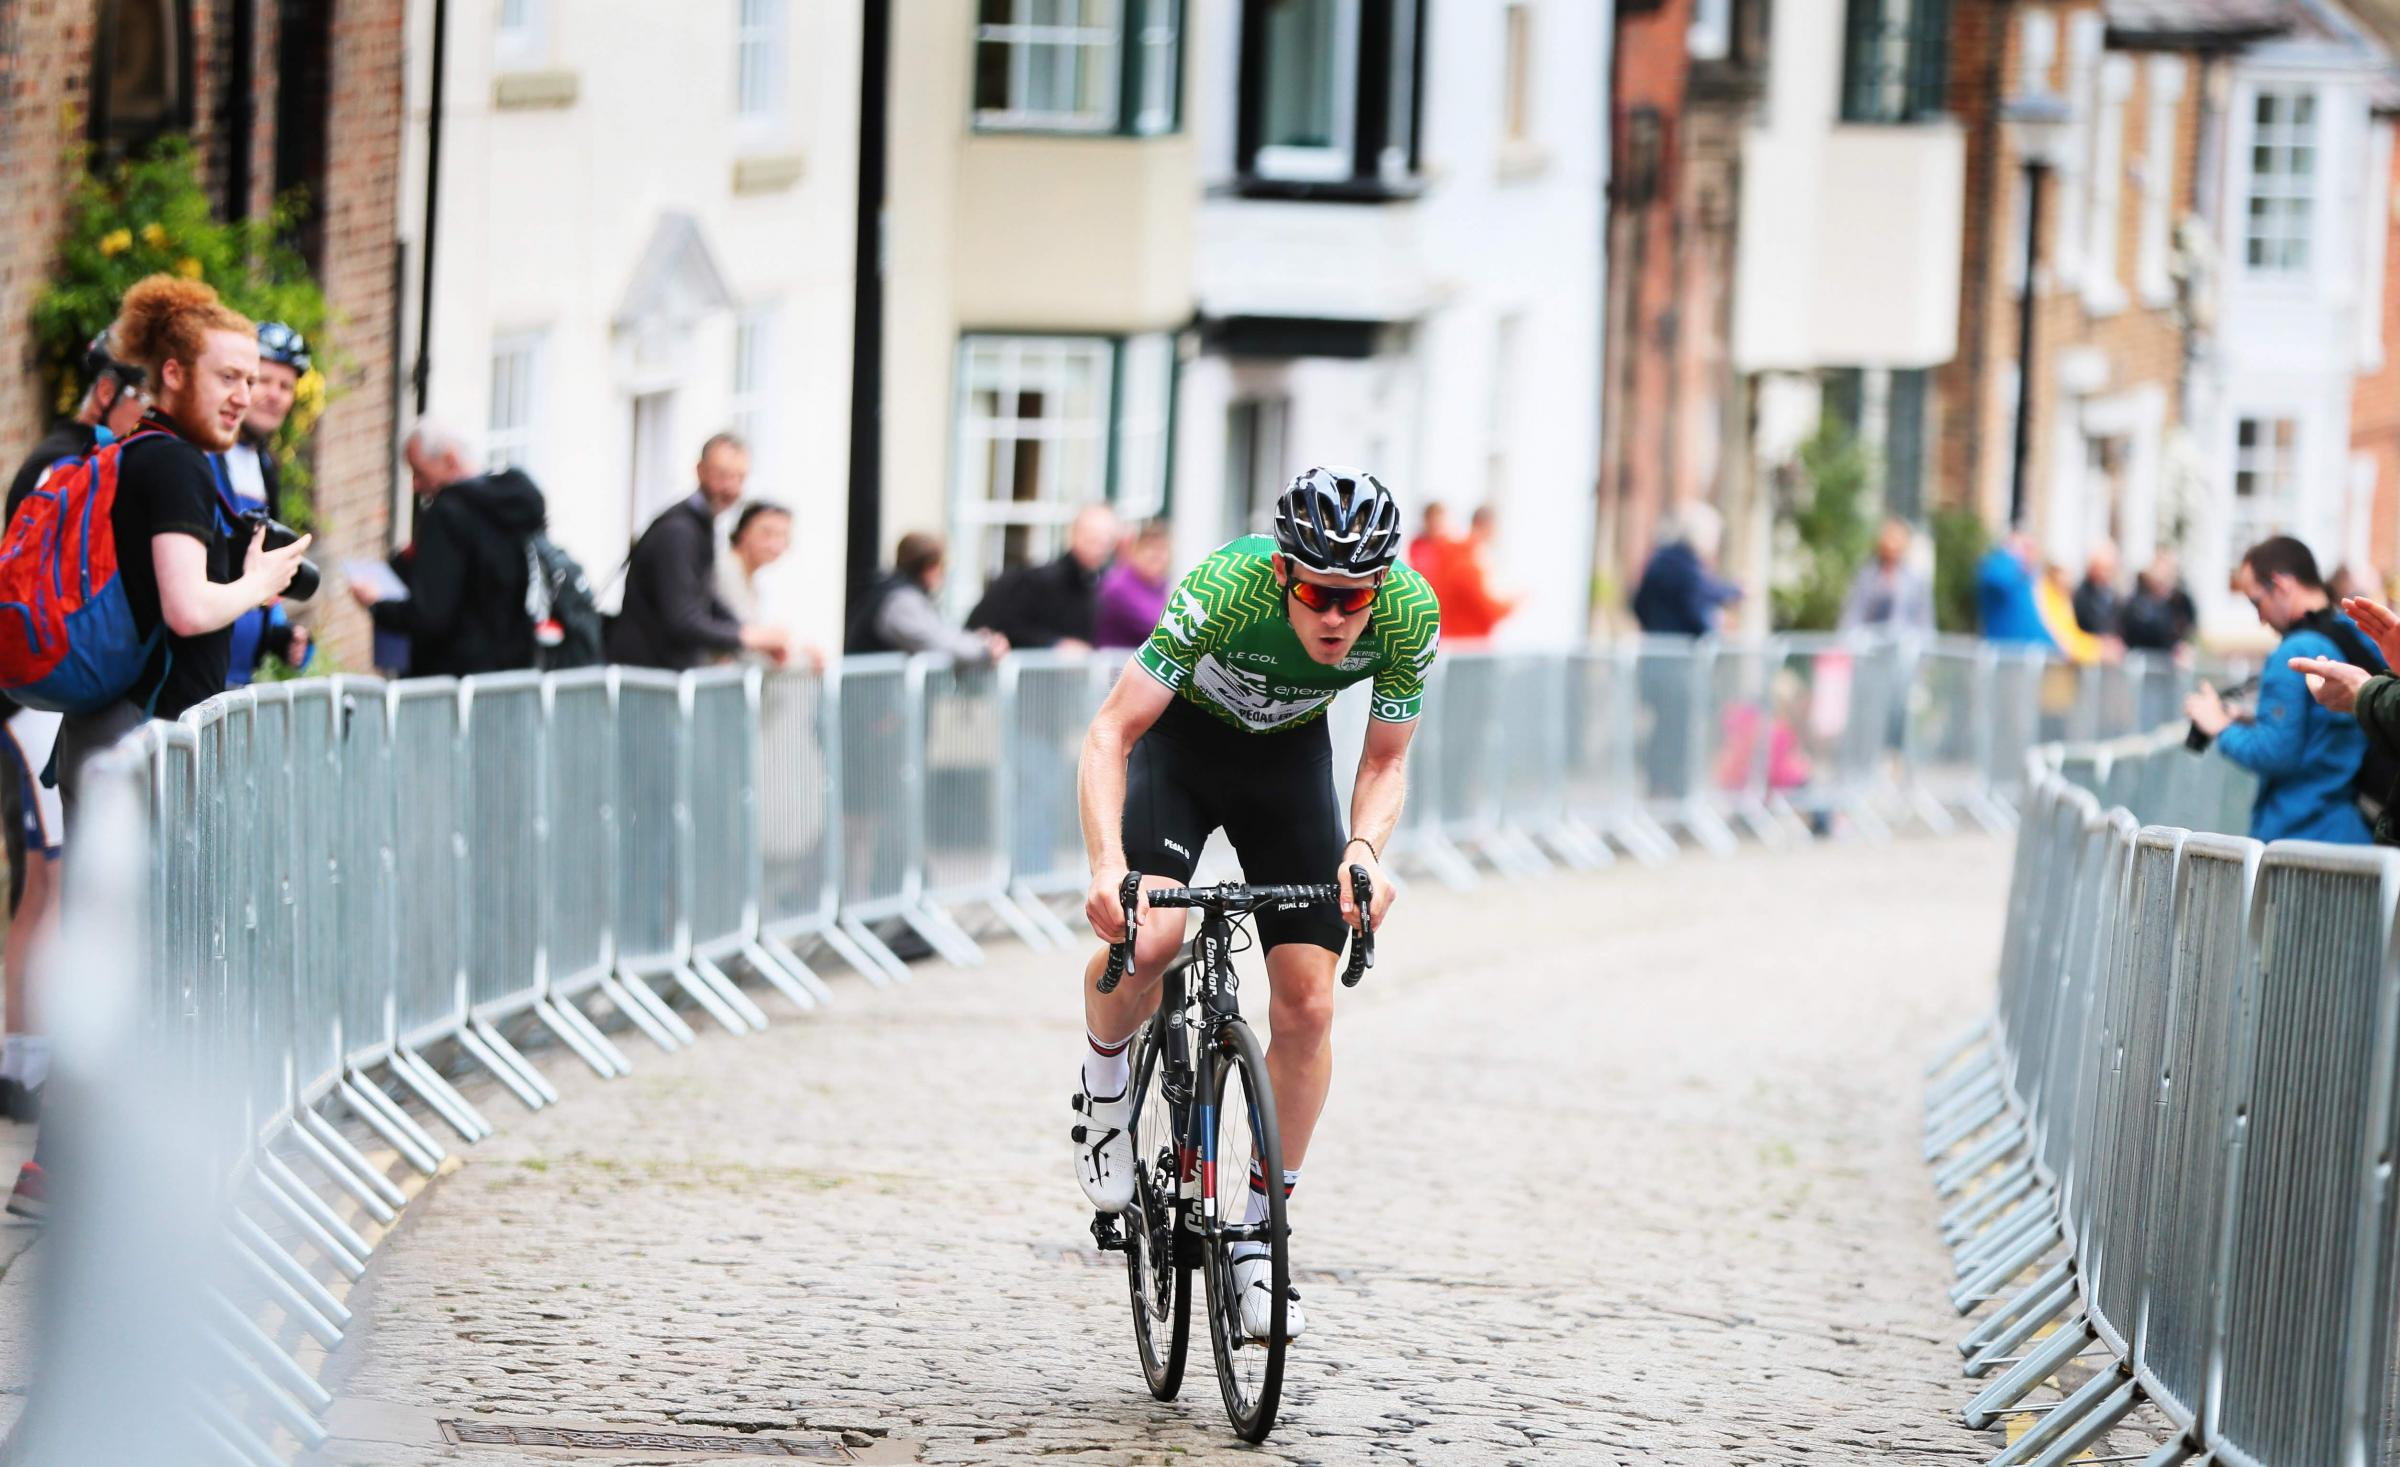 RACE: OVO Energy Tour Series returns to Durham  pictureriders in the hill climb race Picture: SARAH CALDECOTT